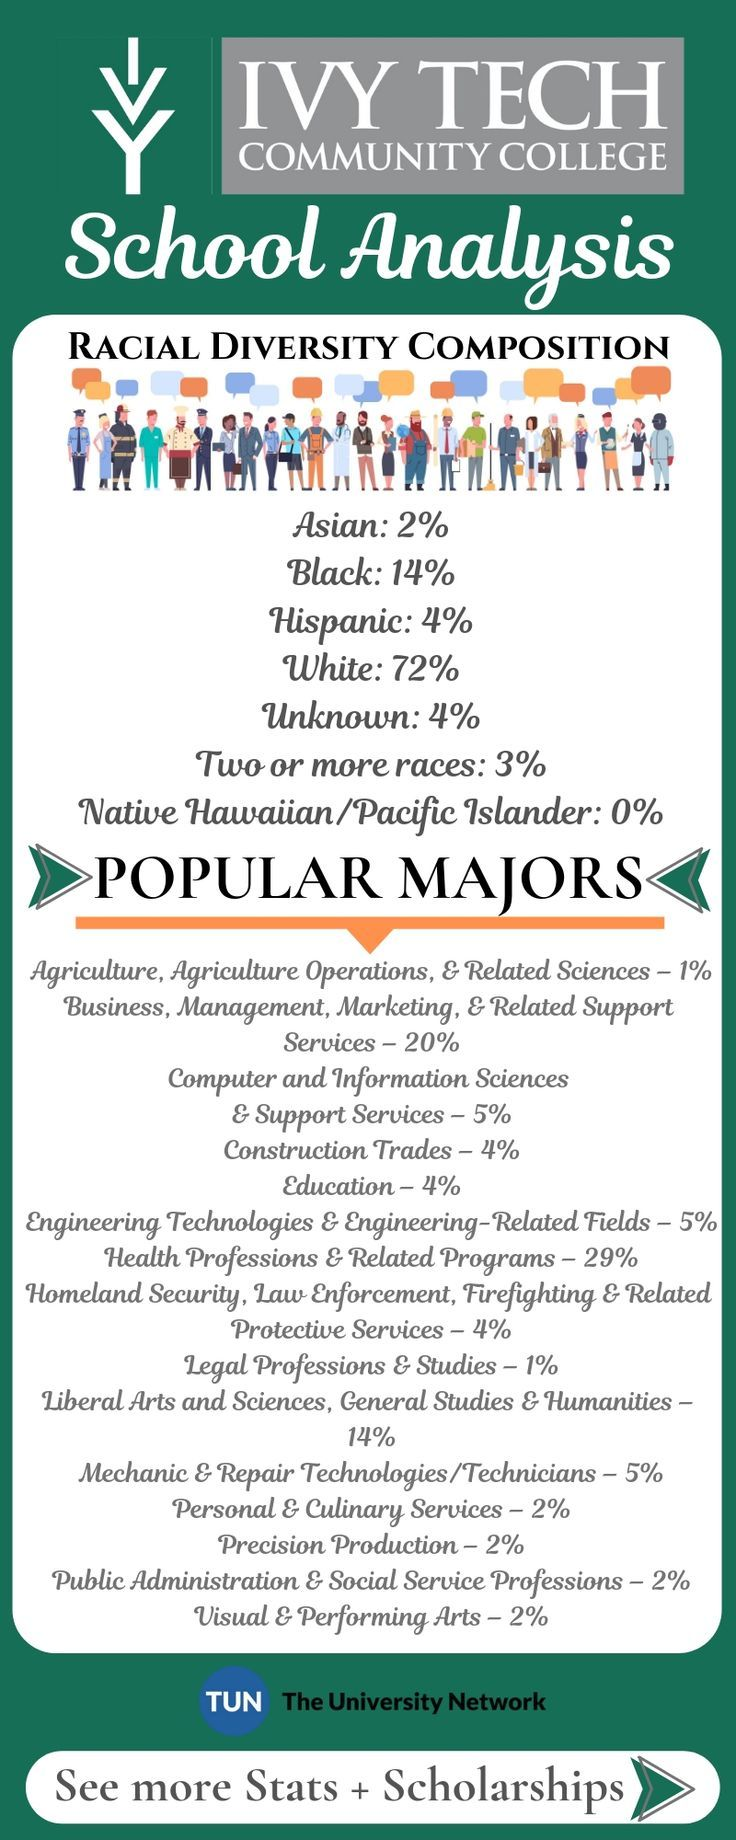 Ivy Tech Community College Tuition and Success Analysis